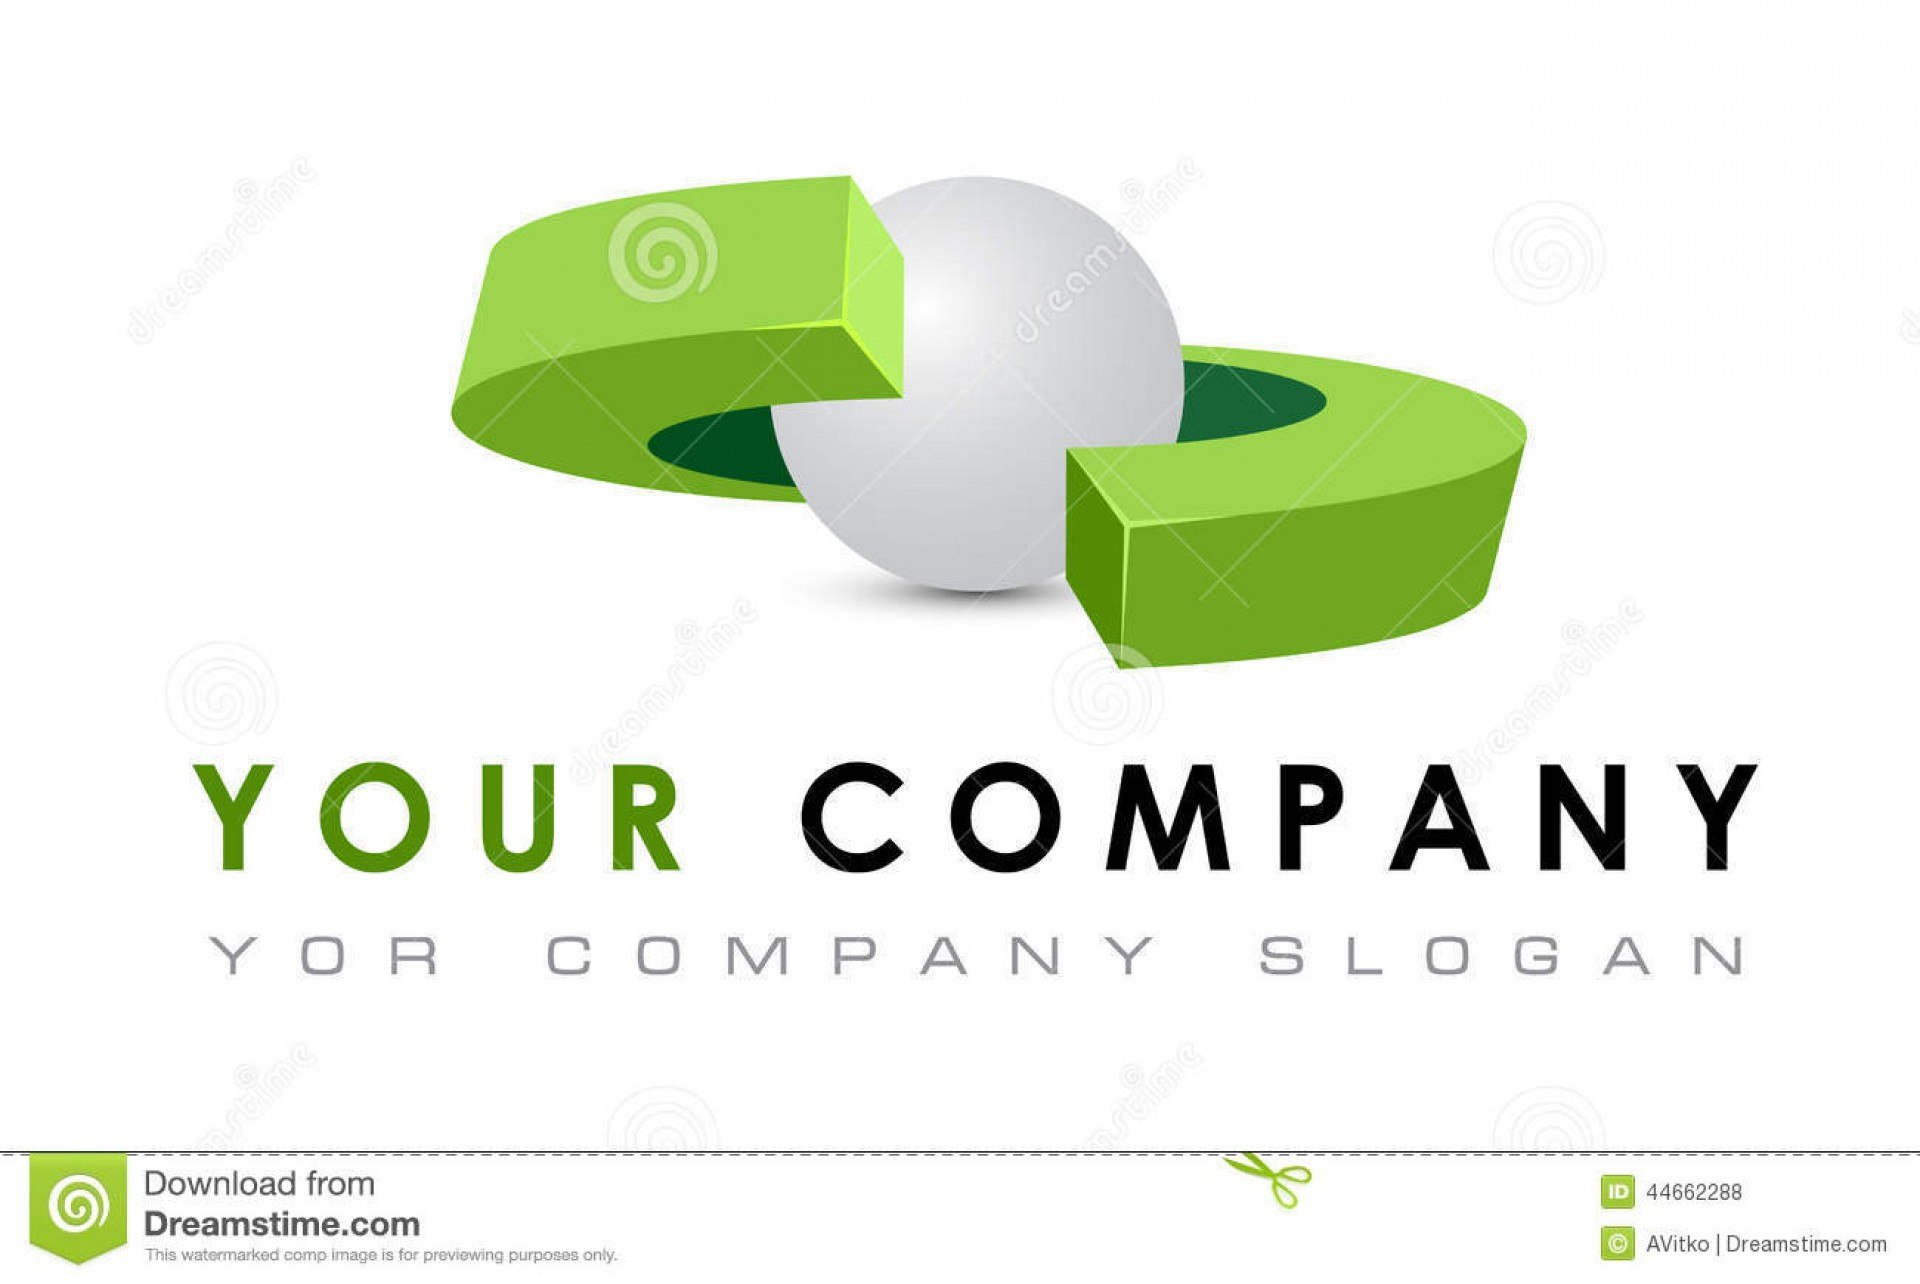 Template Ideas Free Company Logo Templates Abstract Vector Throughout Business Logo Templates Free Download